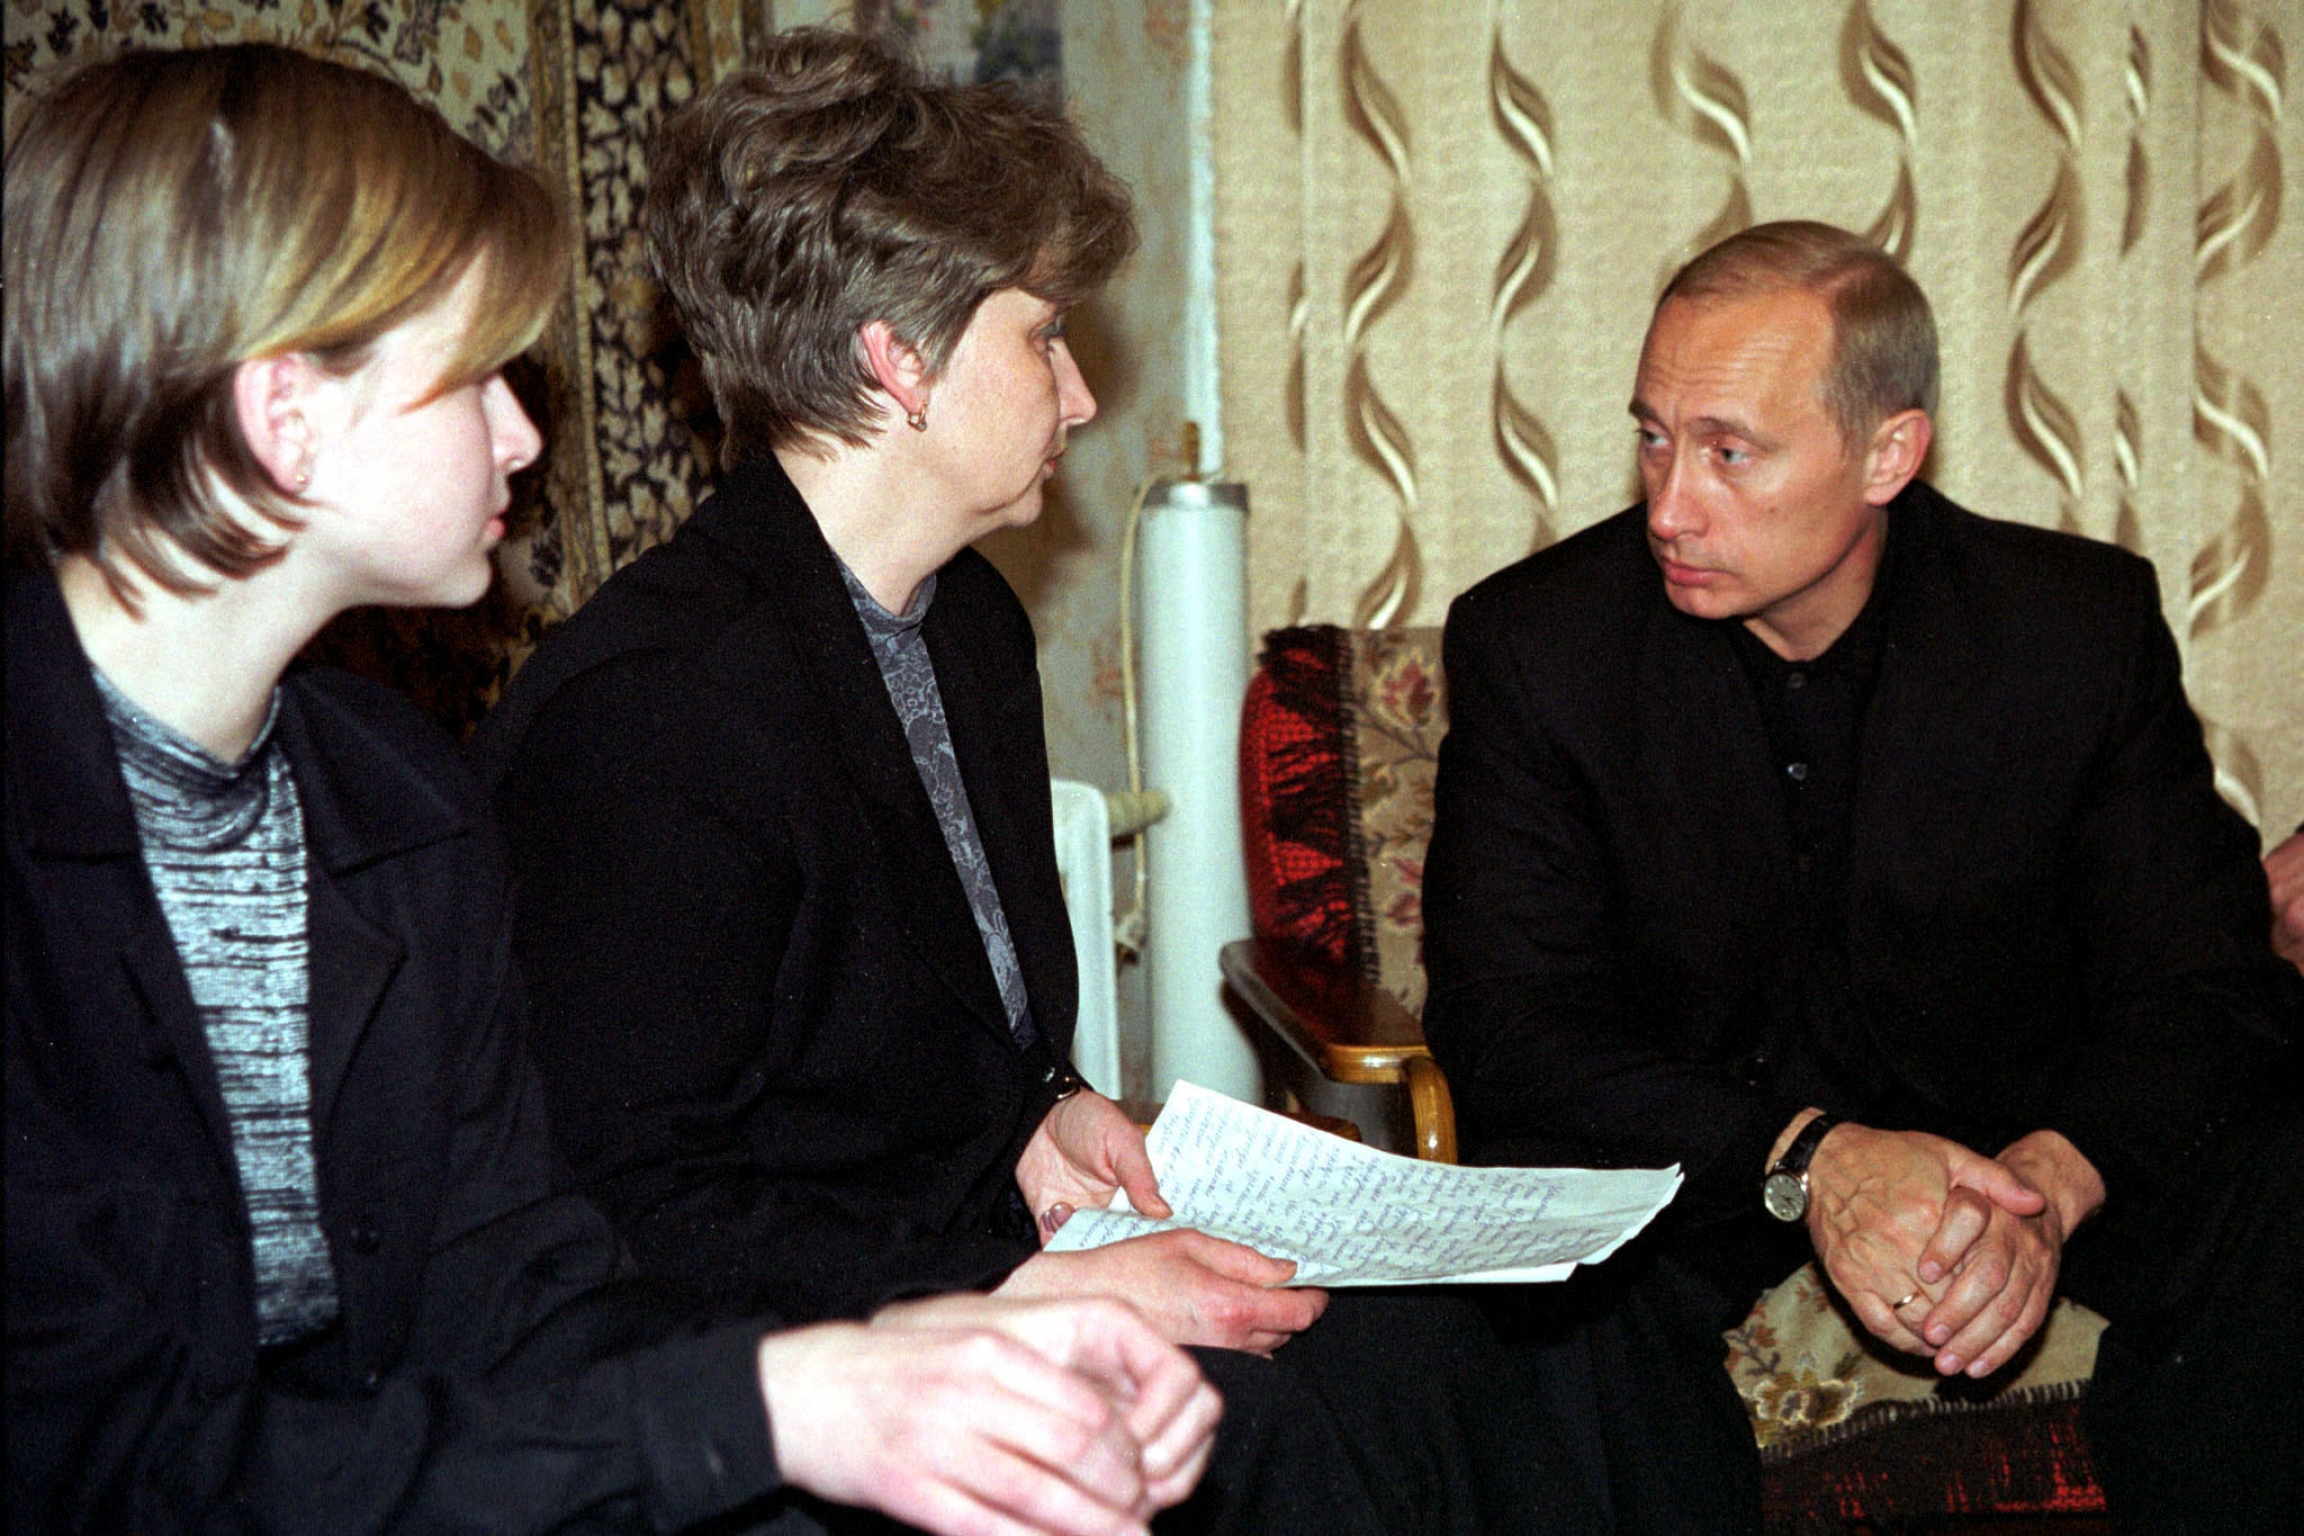 20 Years Of Vladimir Putin In Power A Timeline